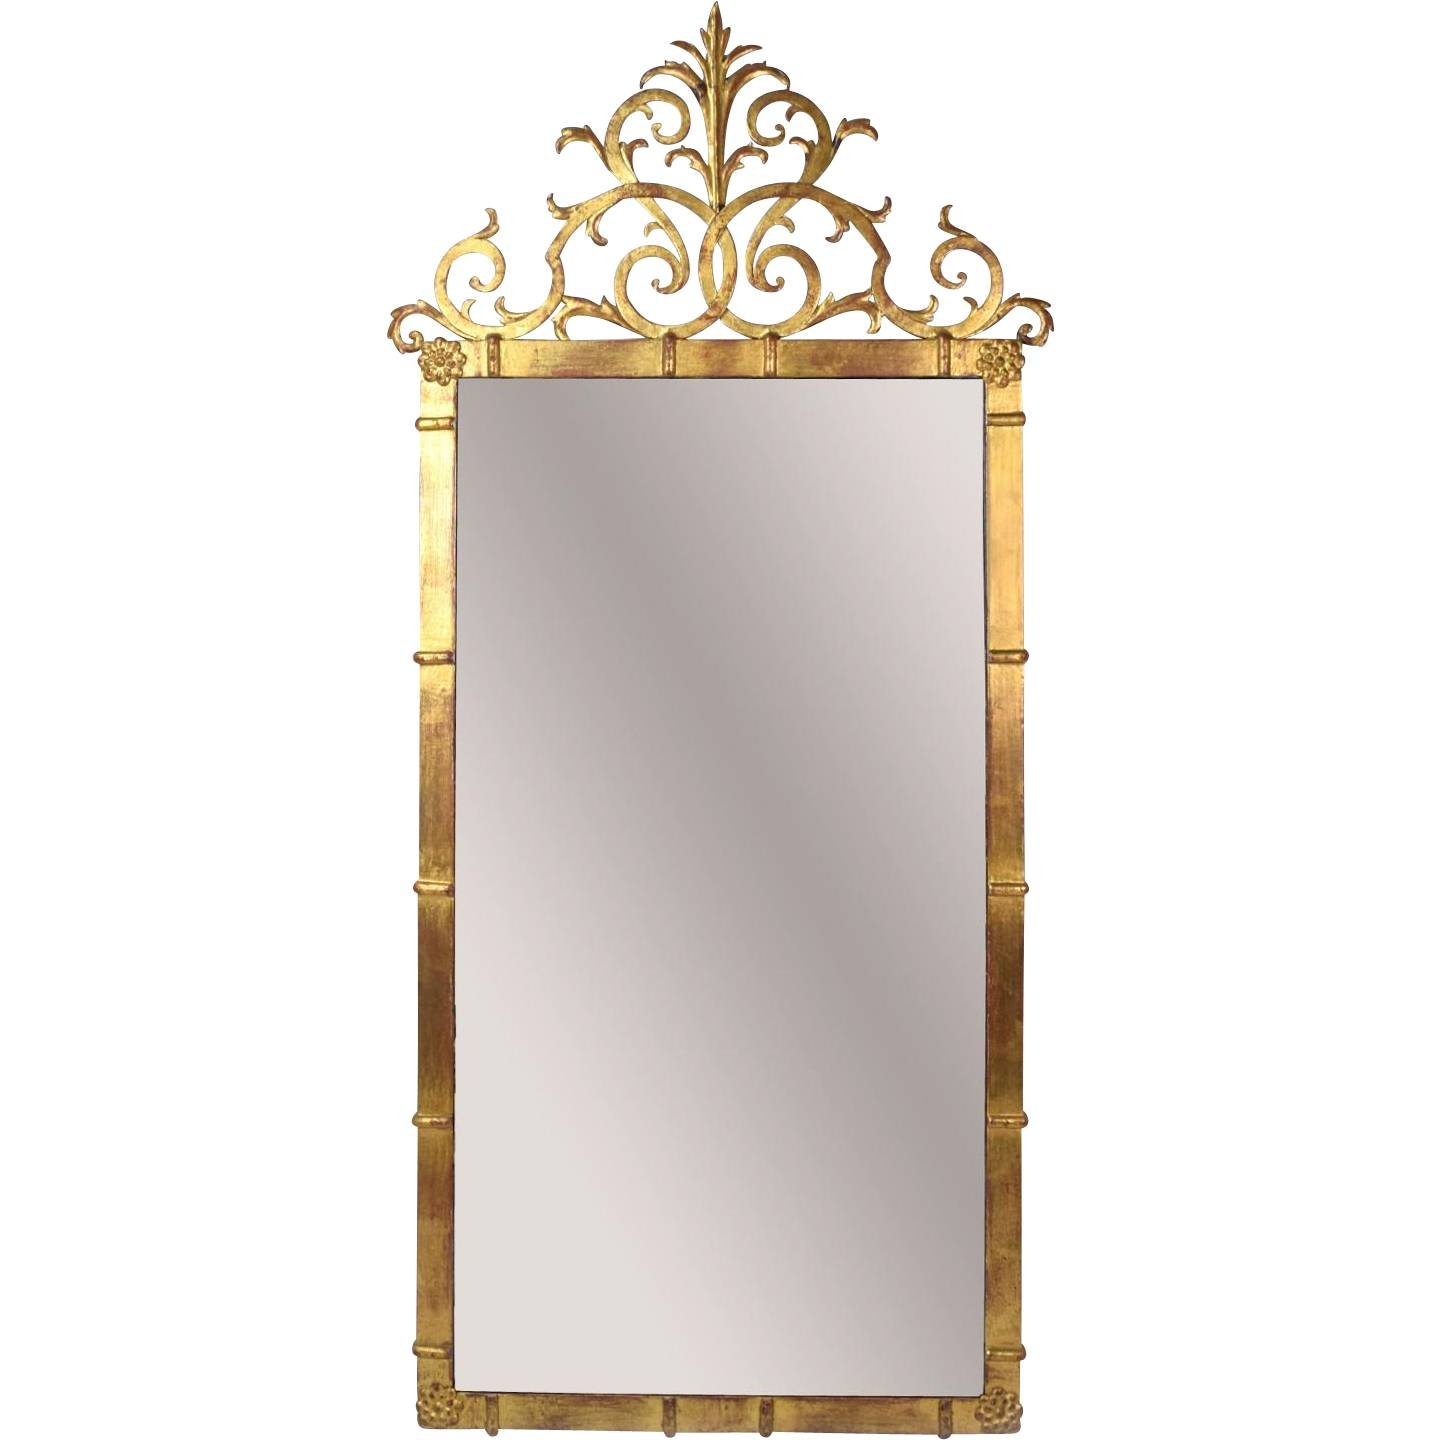 Vintage Palladio Italian Rococo Gilt Metal Pier Wall Mirror From for Vintage Wall Mirrors (Image 19 of 25)